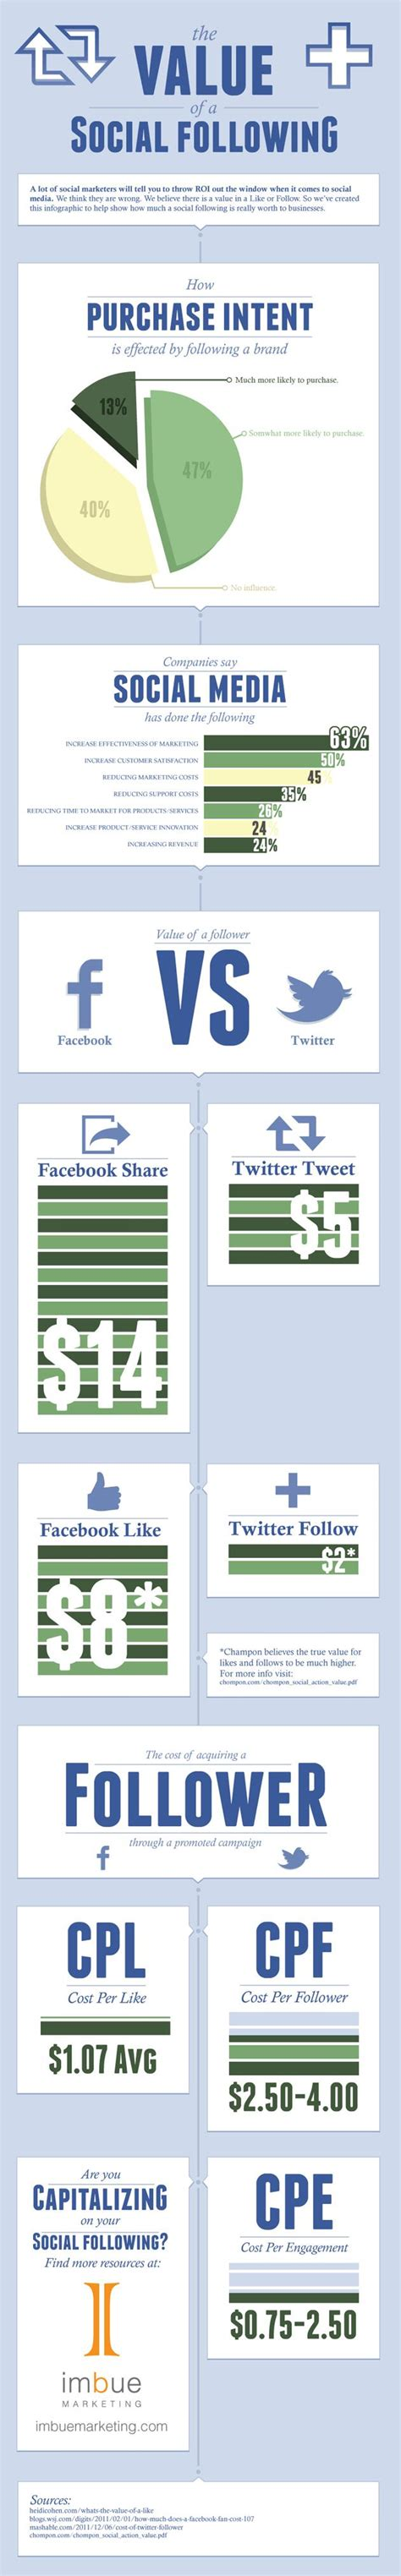 Pcmag Sweepstakes - infographic what s a facebook like twitter follower worth to brands news